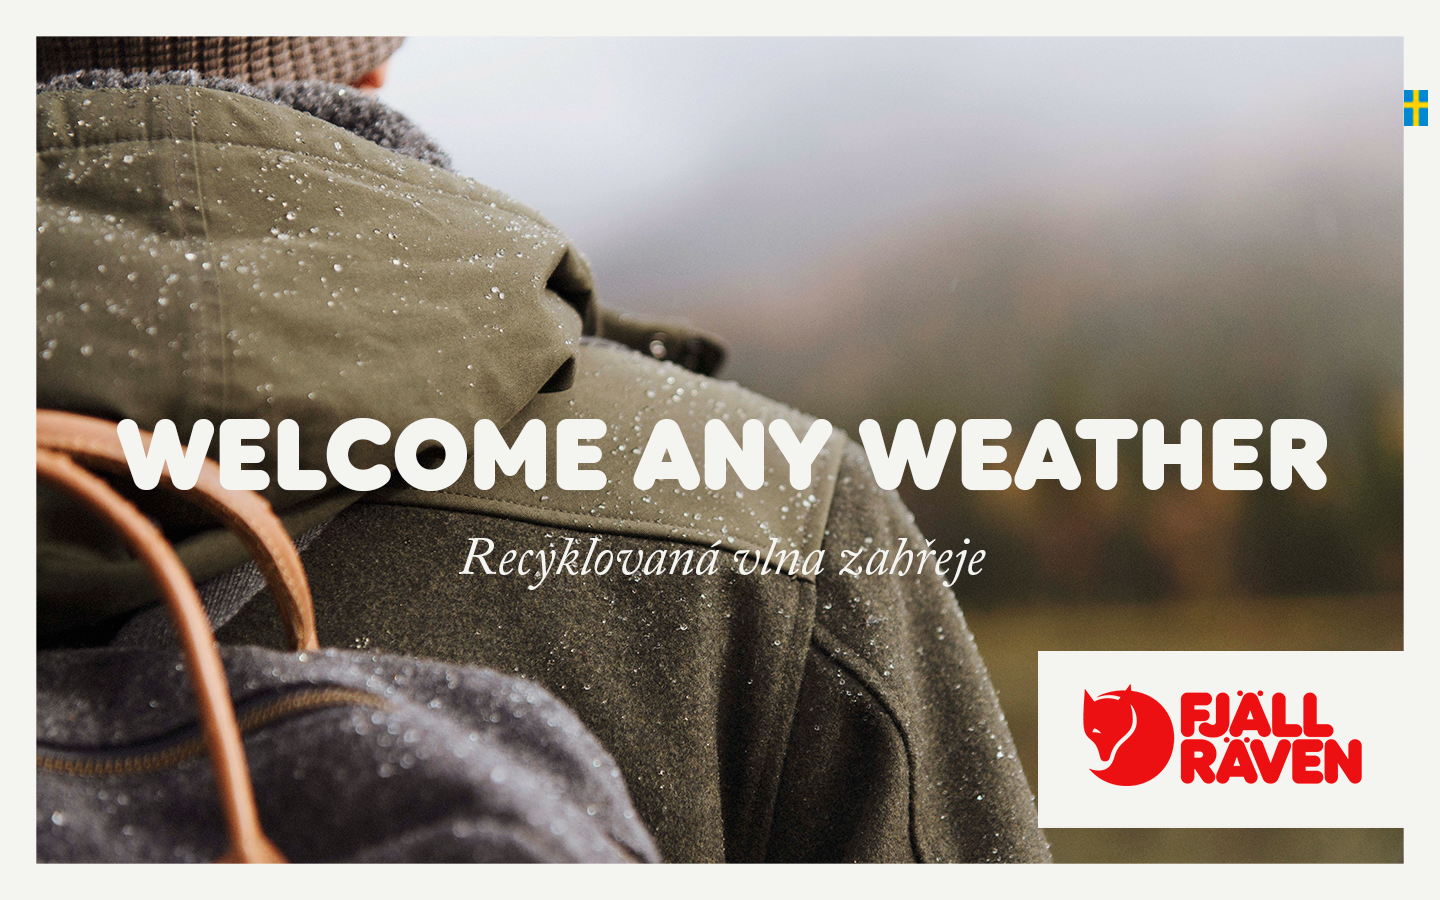 [album/Products_Model_Product/94/WELCOME_ANY_WEATHER_480x300_2.png]